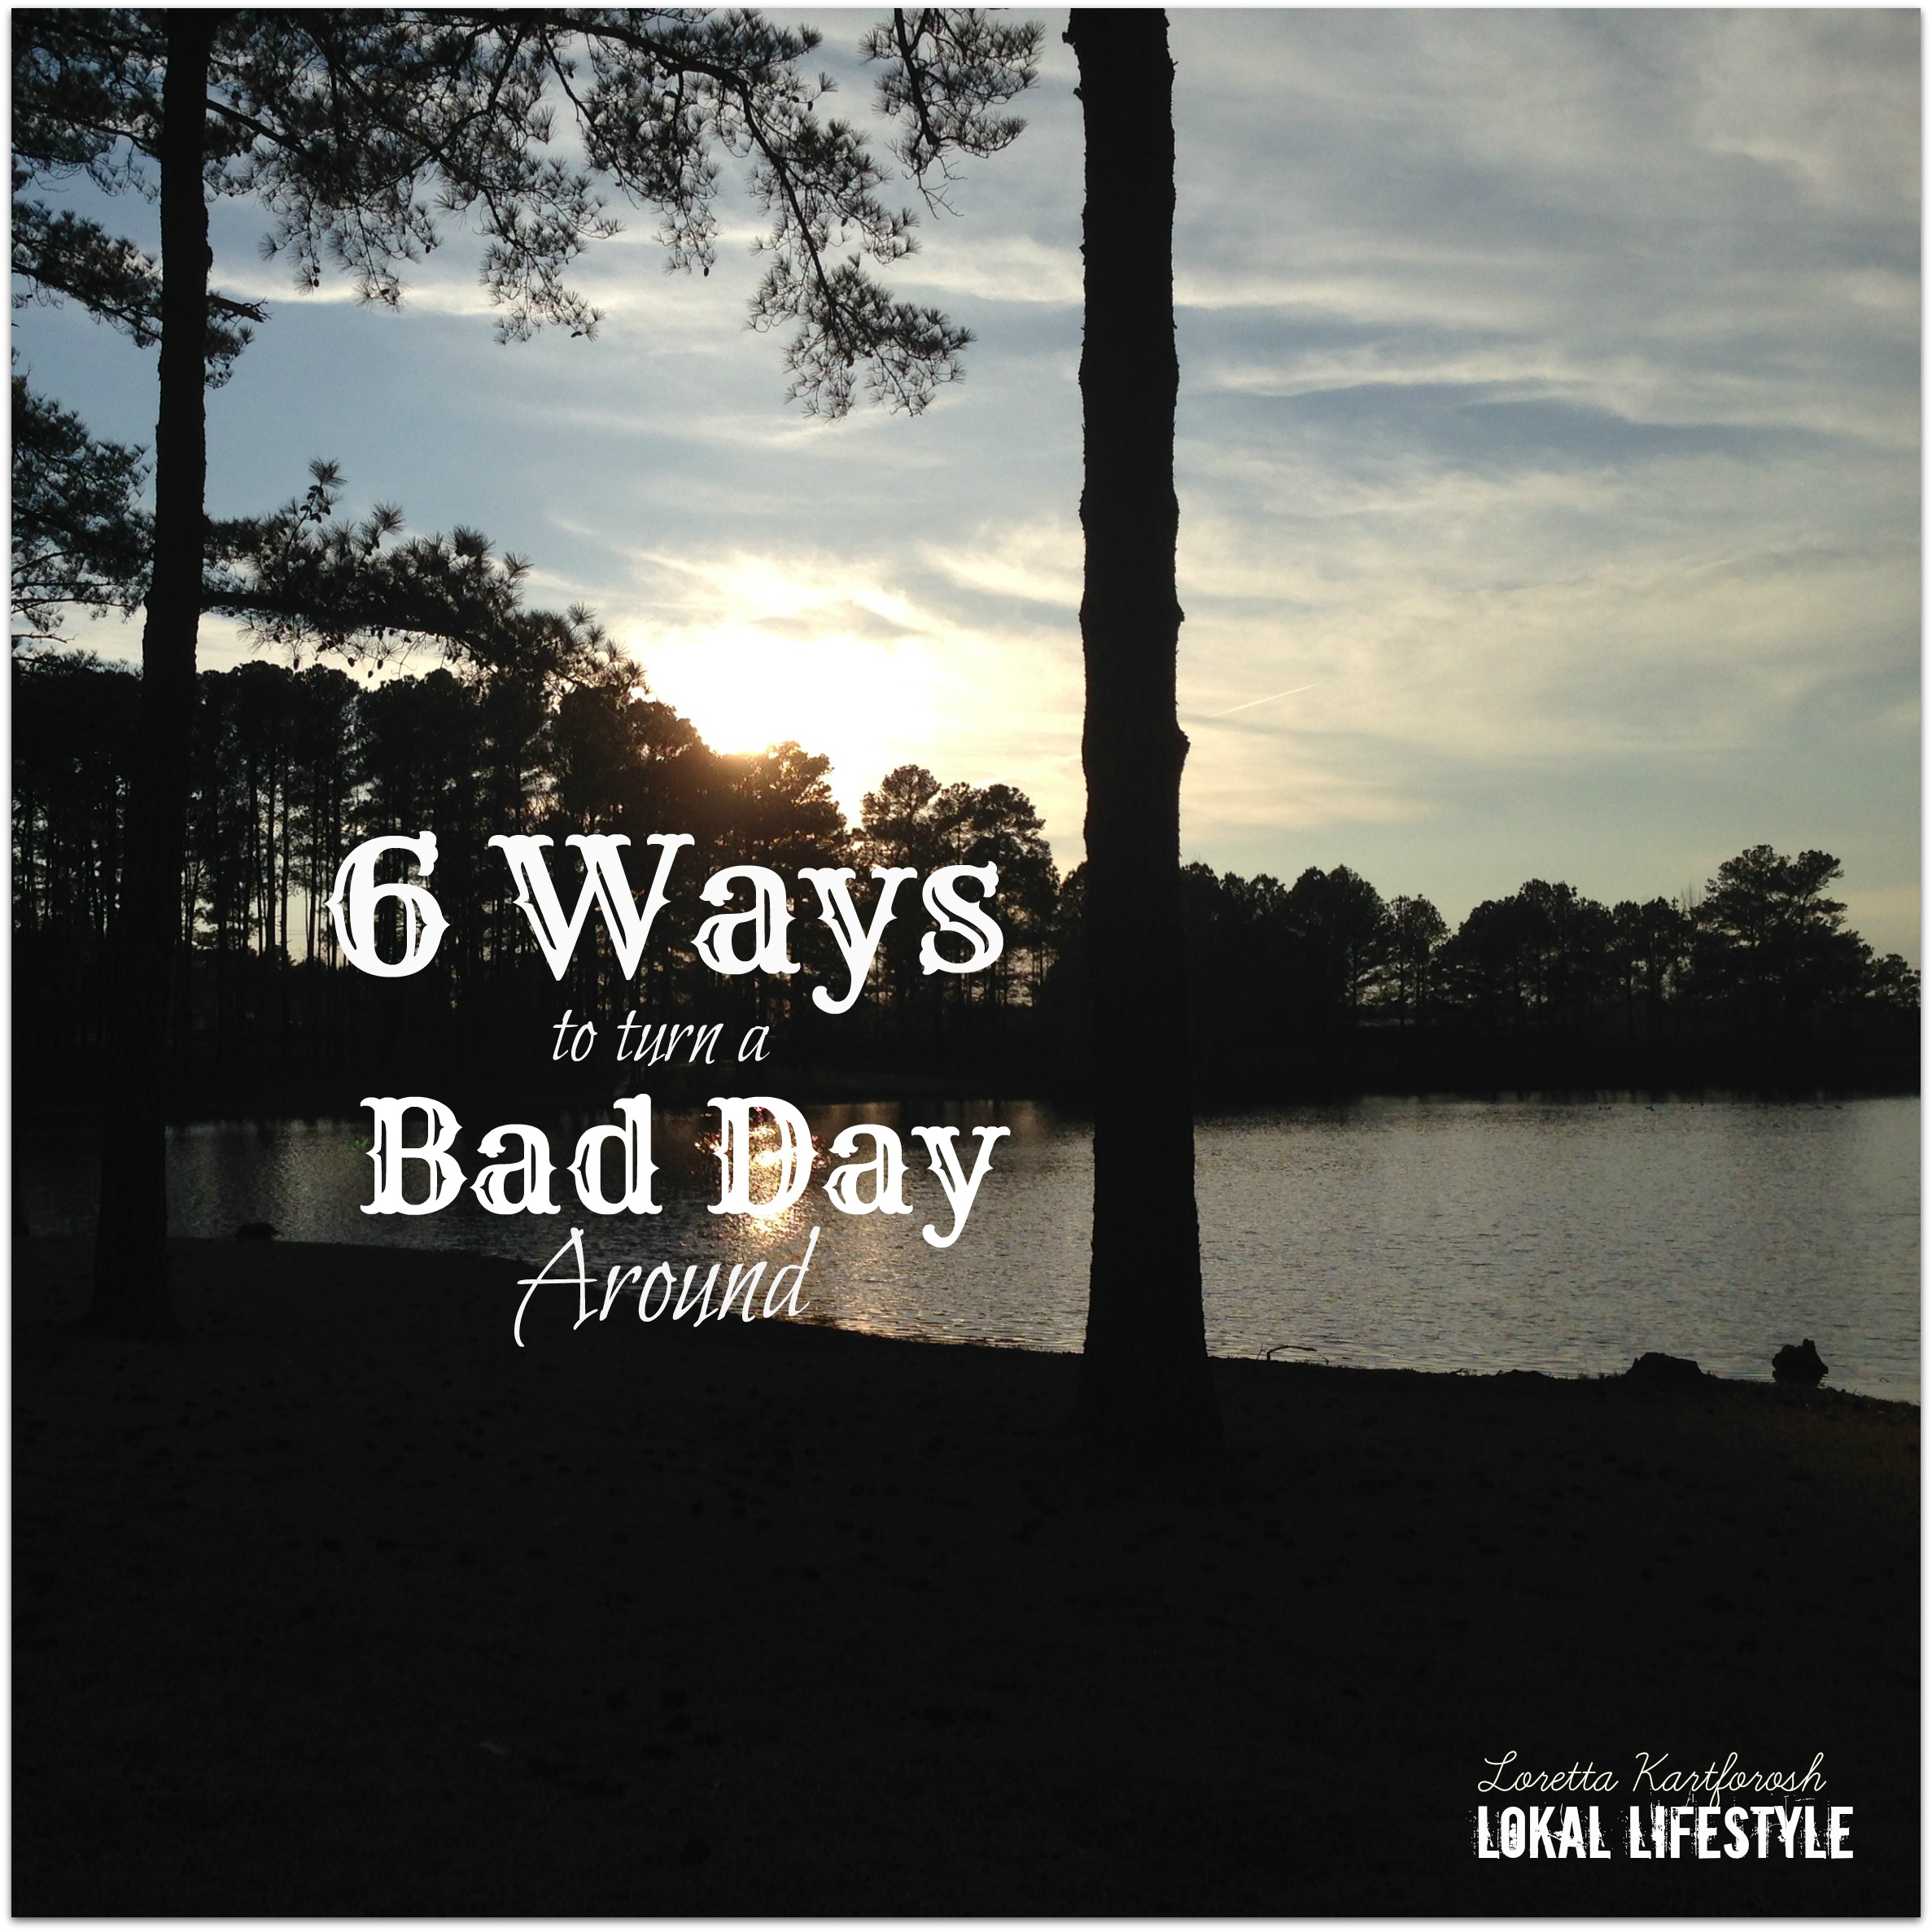 6 Ways to Turn a Bad Day Around